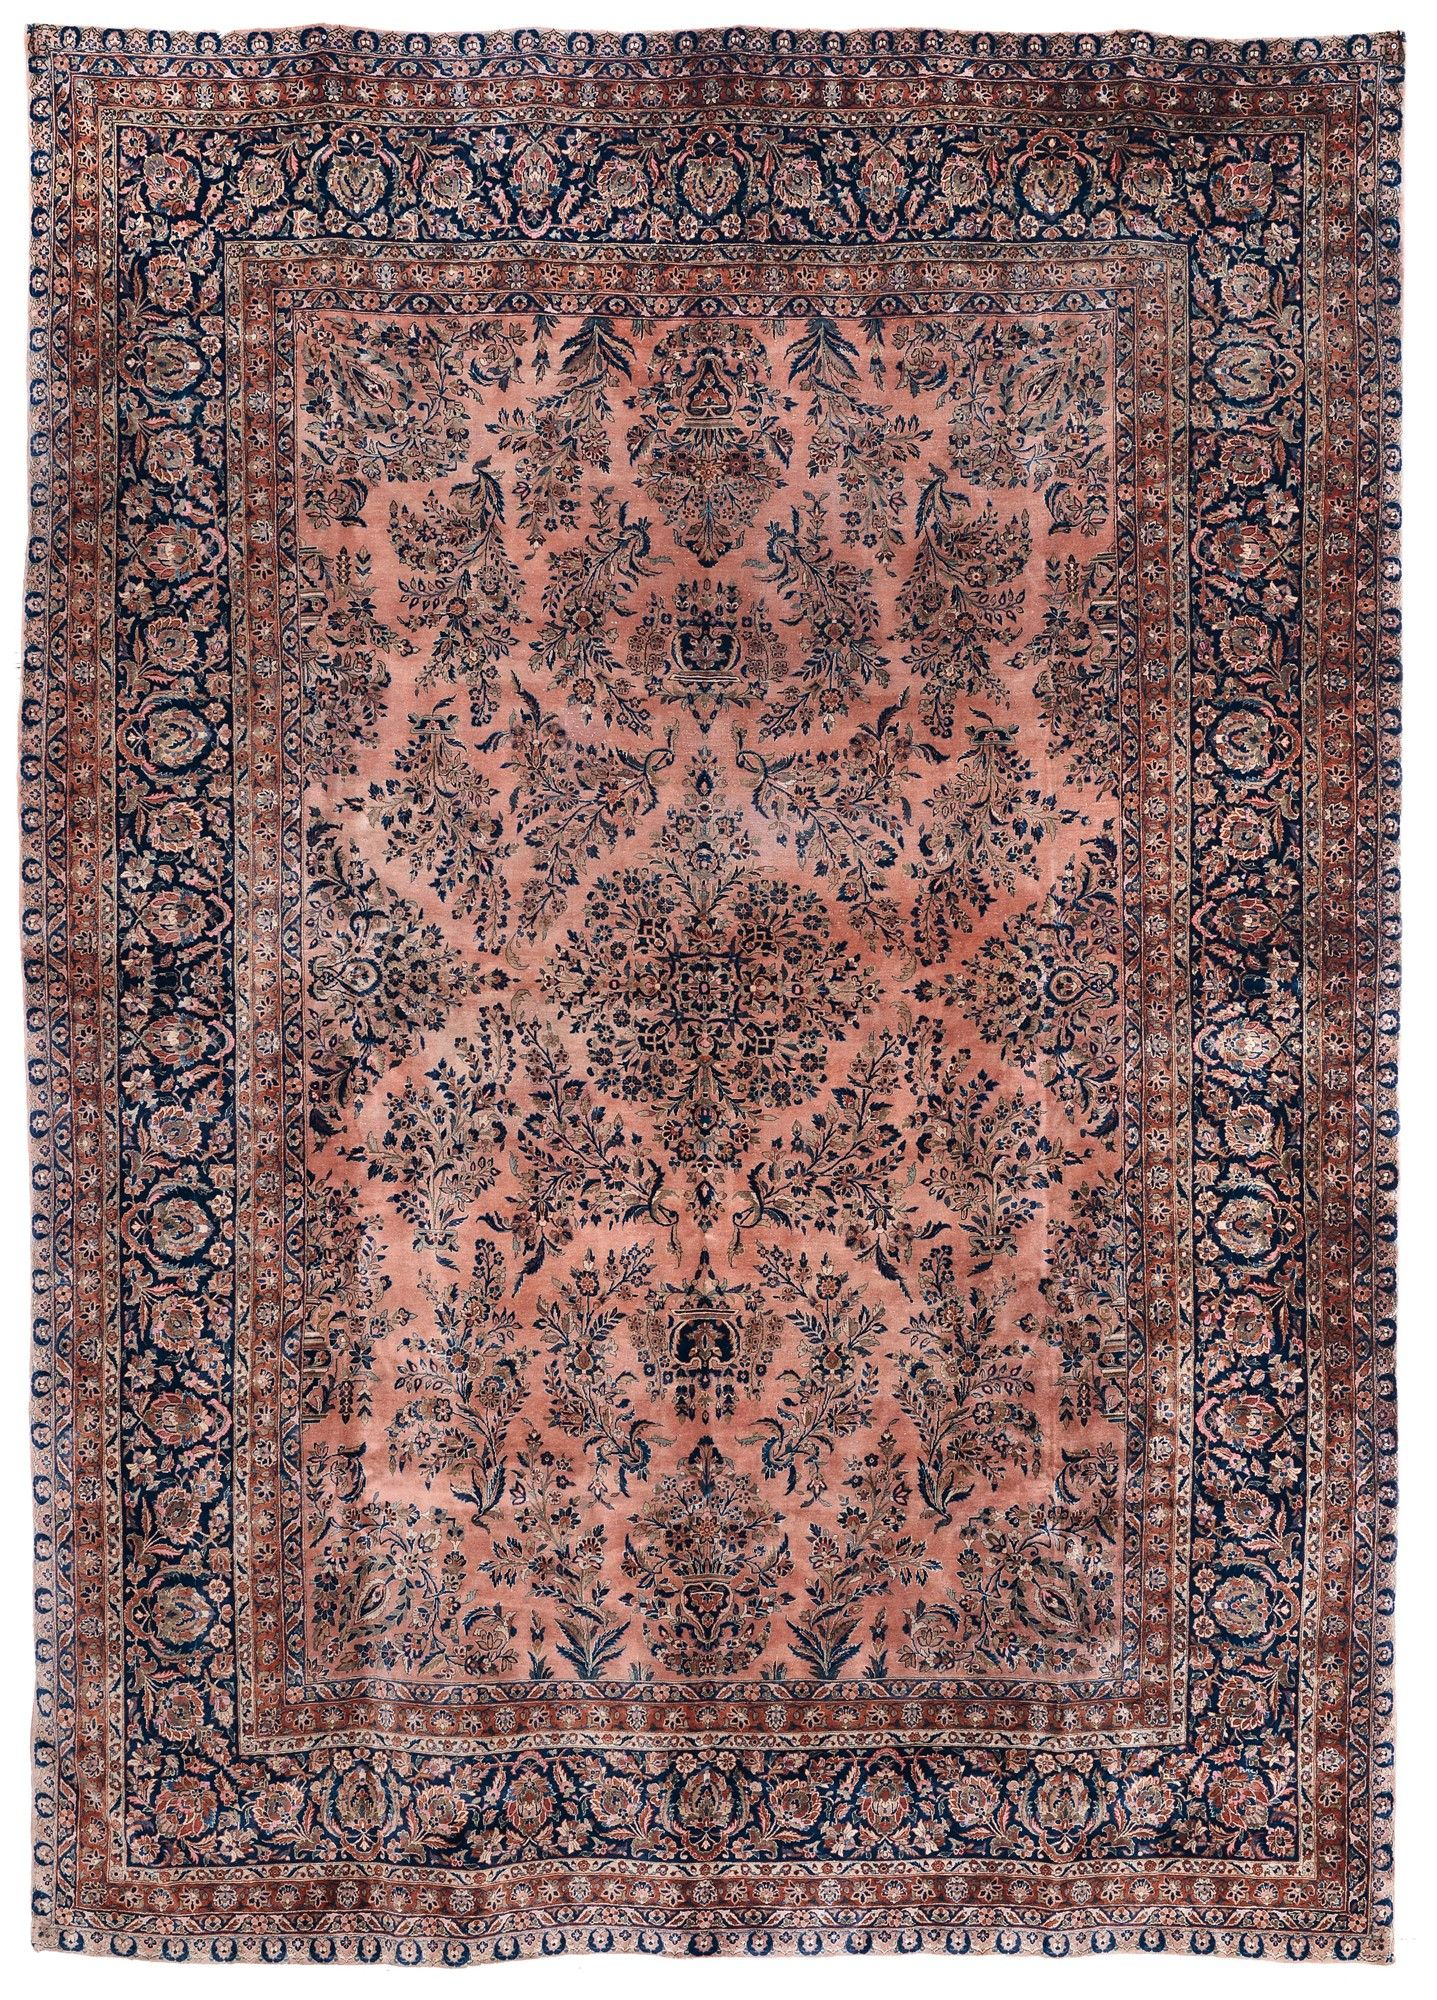 Pin on Carpets + Rugs